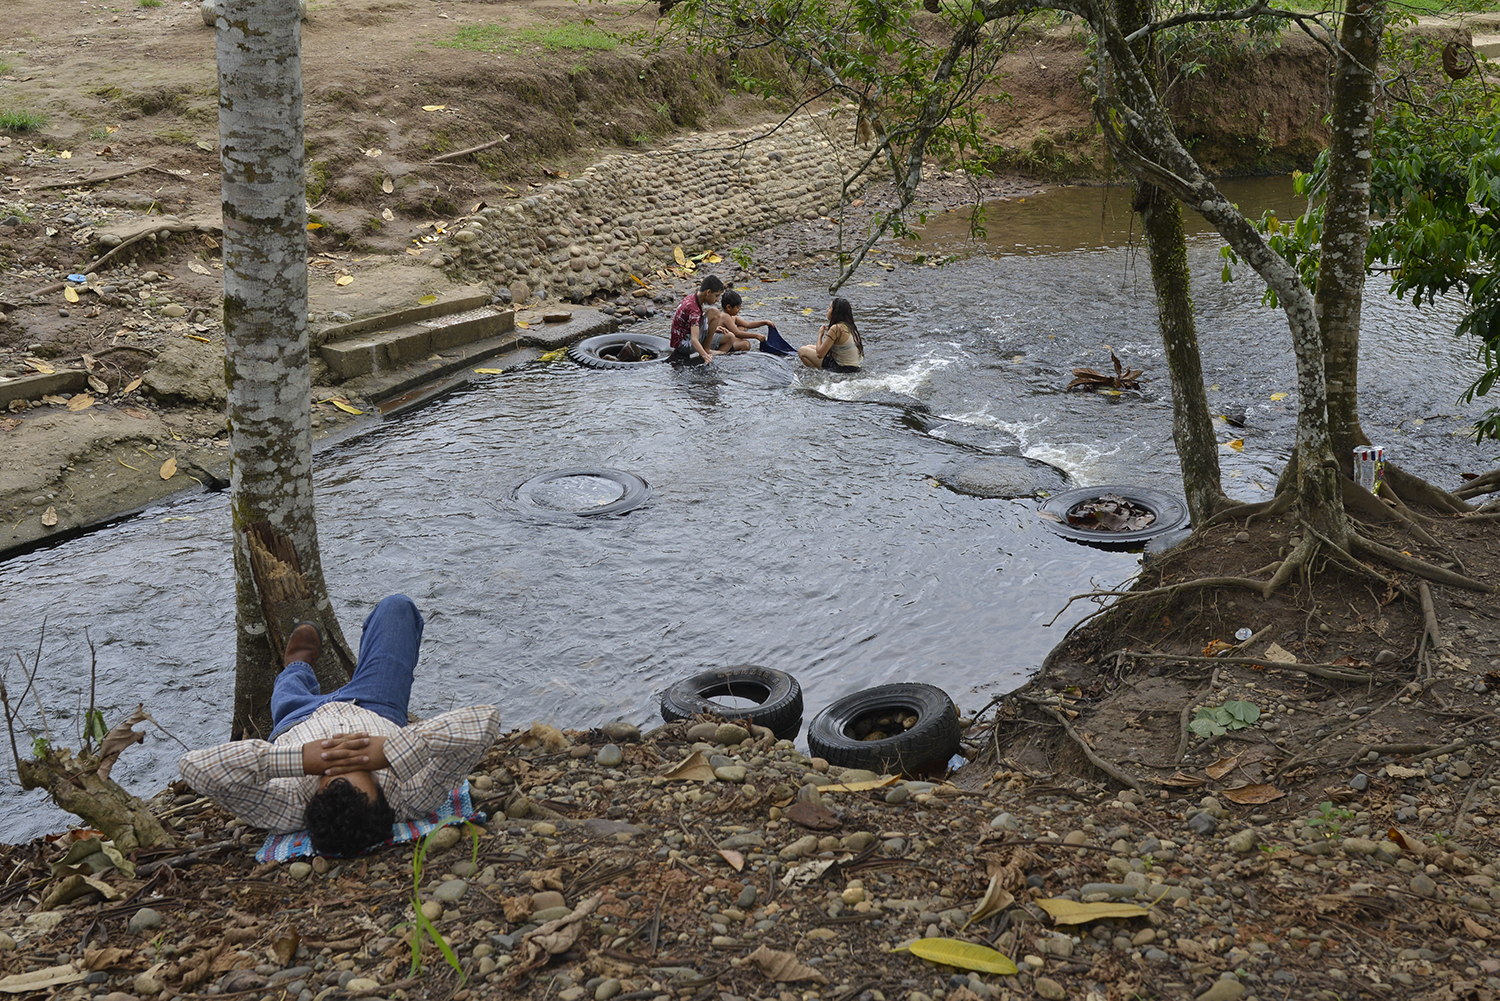 ECUADOR, Sucumbios Province. December 2015.  Children wash clothes in a river in the Lago Agrio Canton. Drinking, bathing and fishing in contaminated rivers has led to stomach and skin cancers, abortions, infections and headaches.